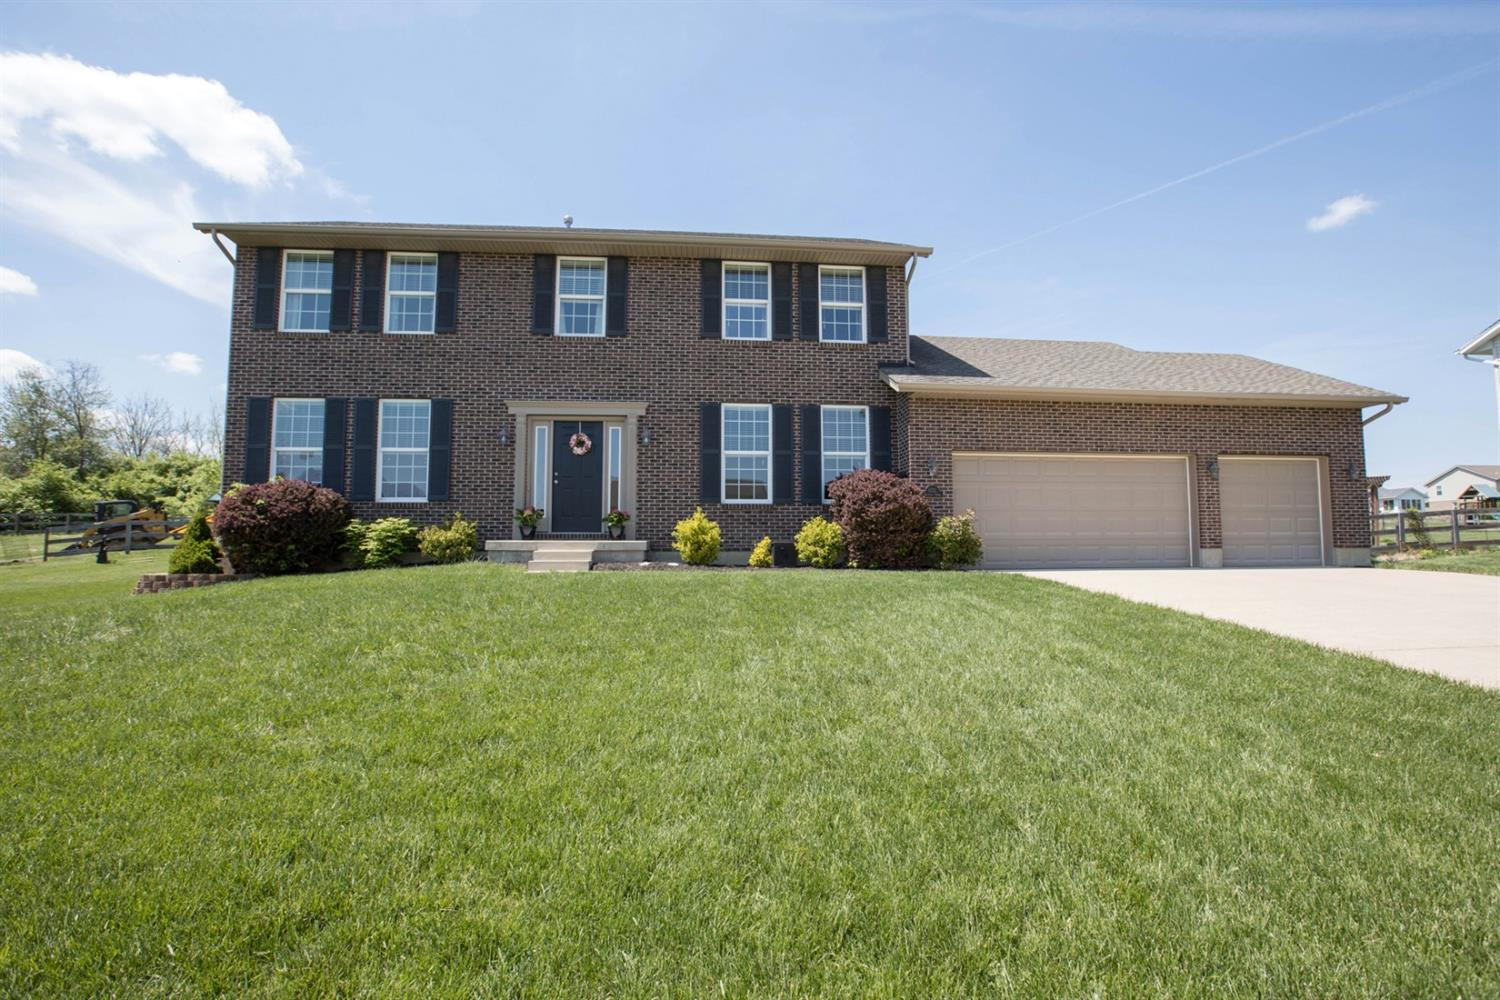 Property for sale at 6733 Bluewood Knoll, Liberty Twp,  Ohio 45011